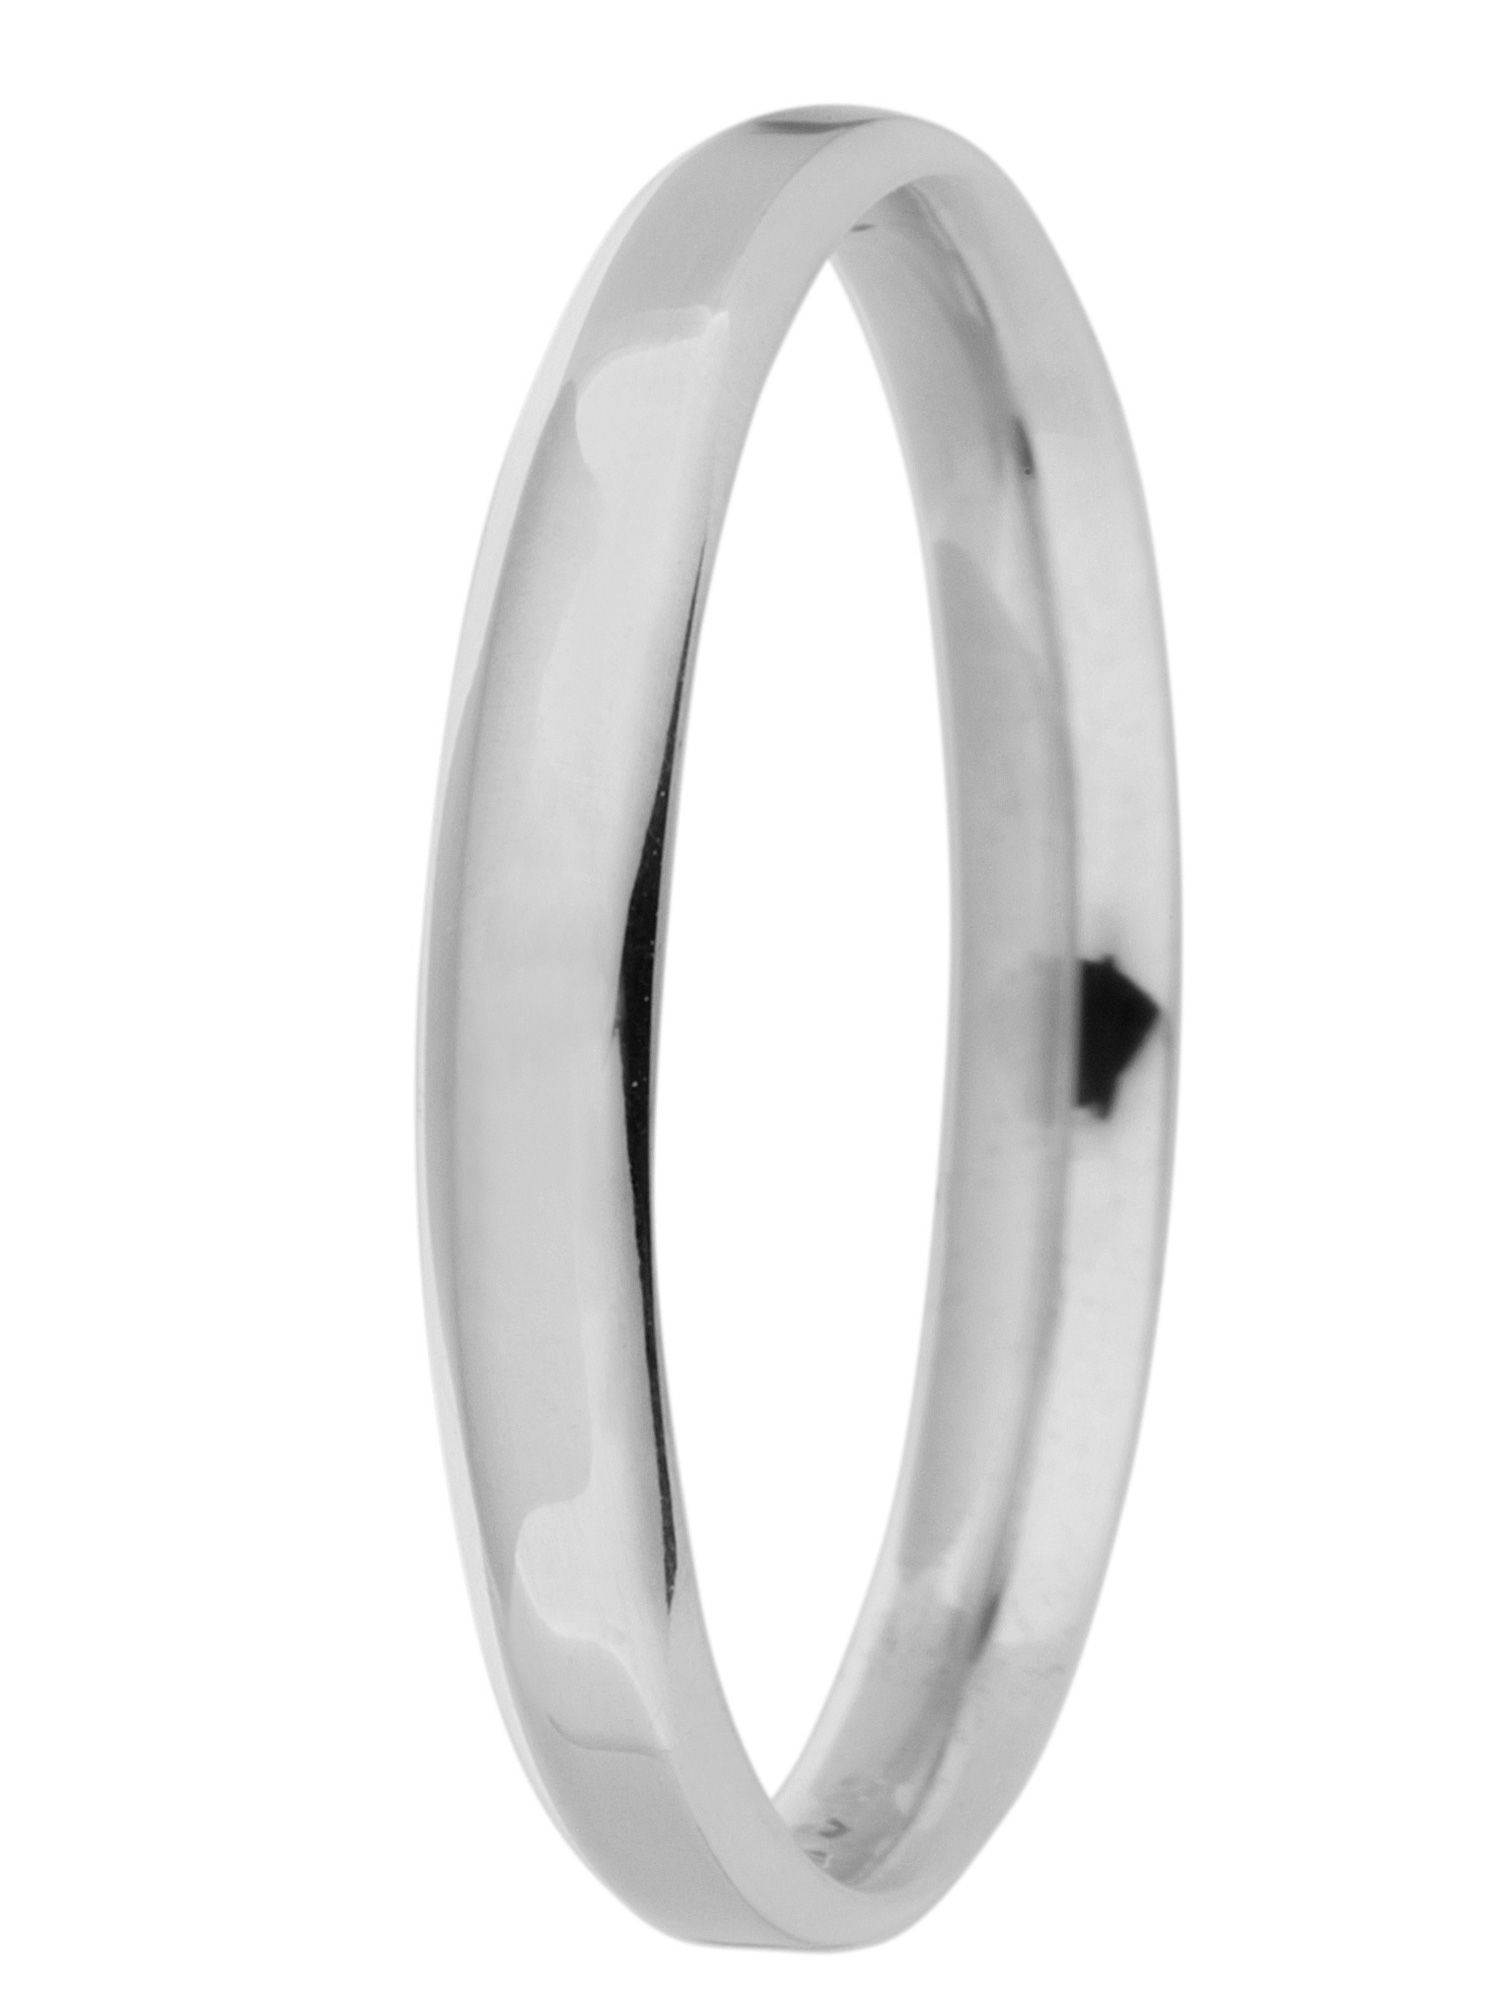 Brides platinum 2mm court wedding ring - Silver